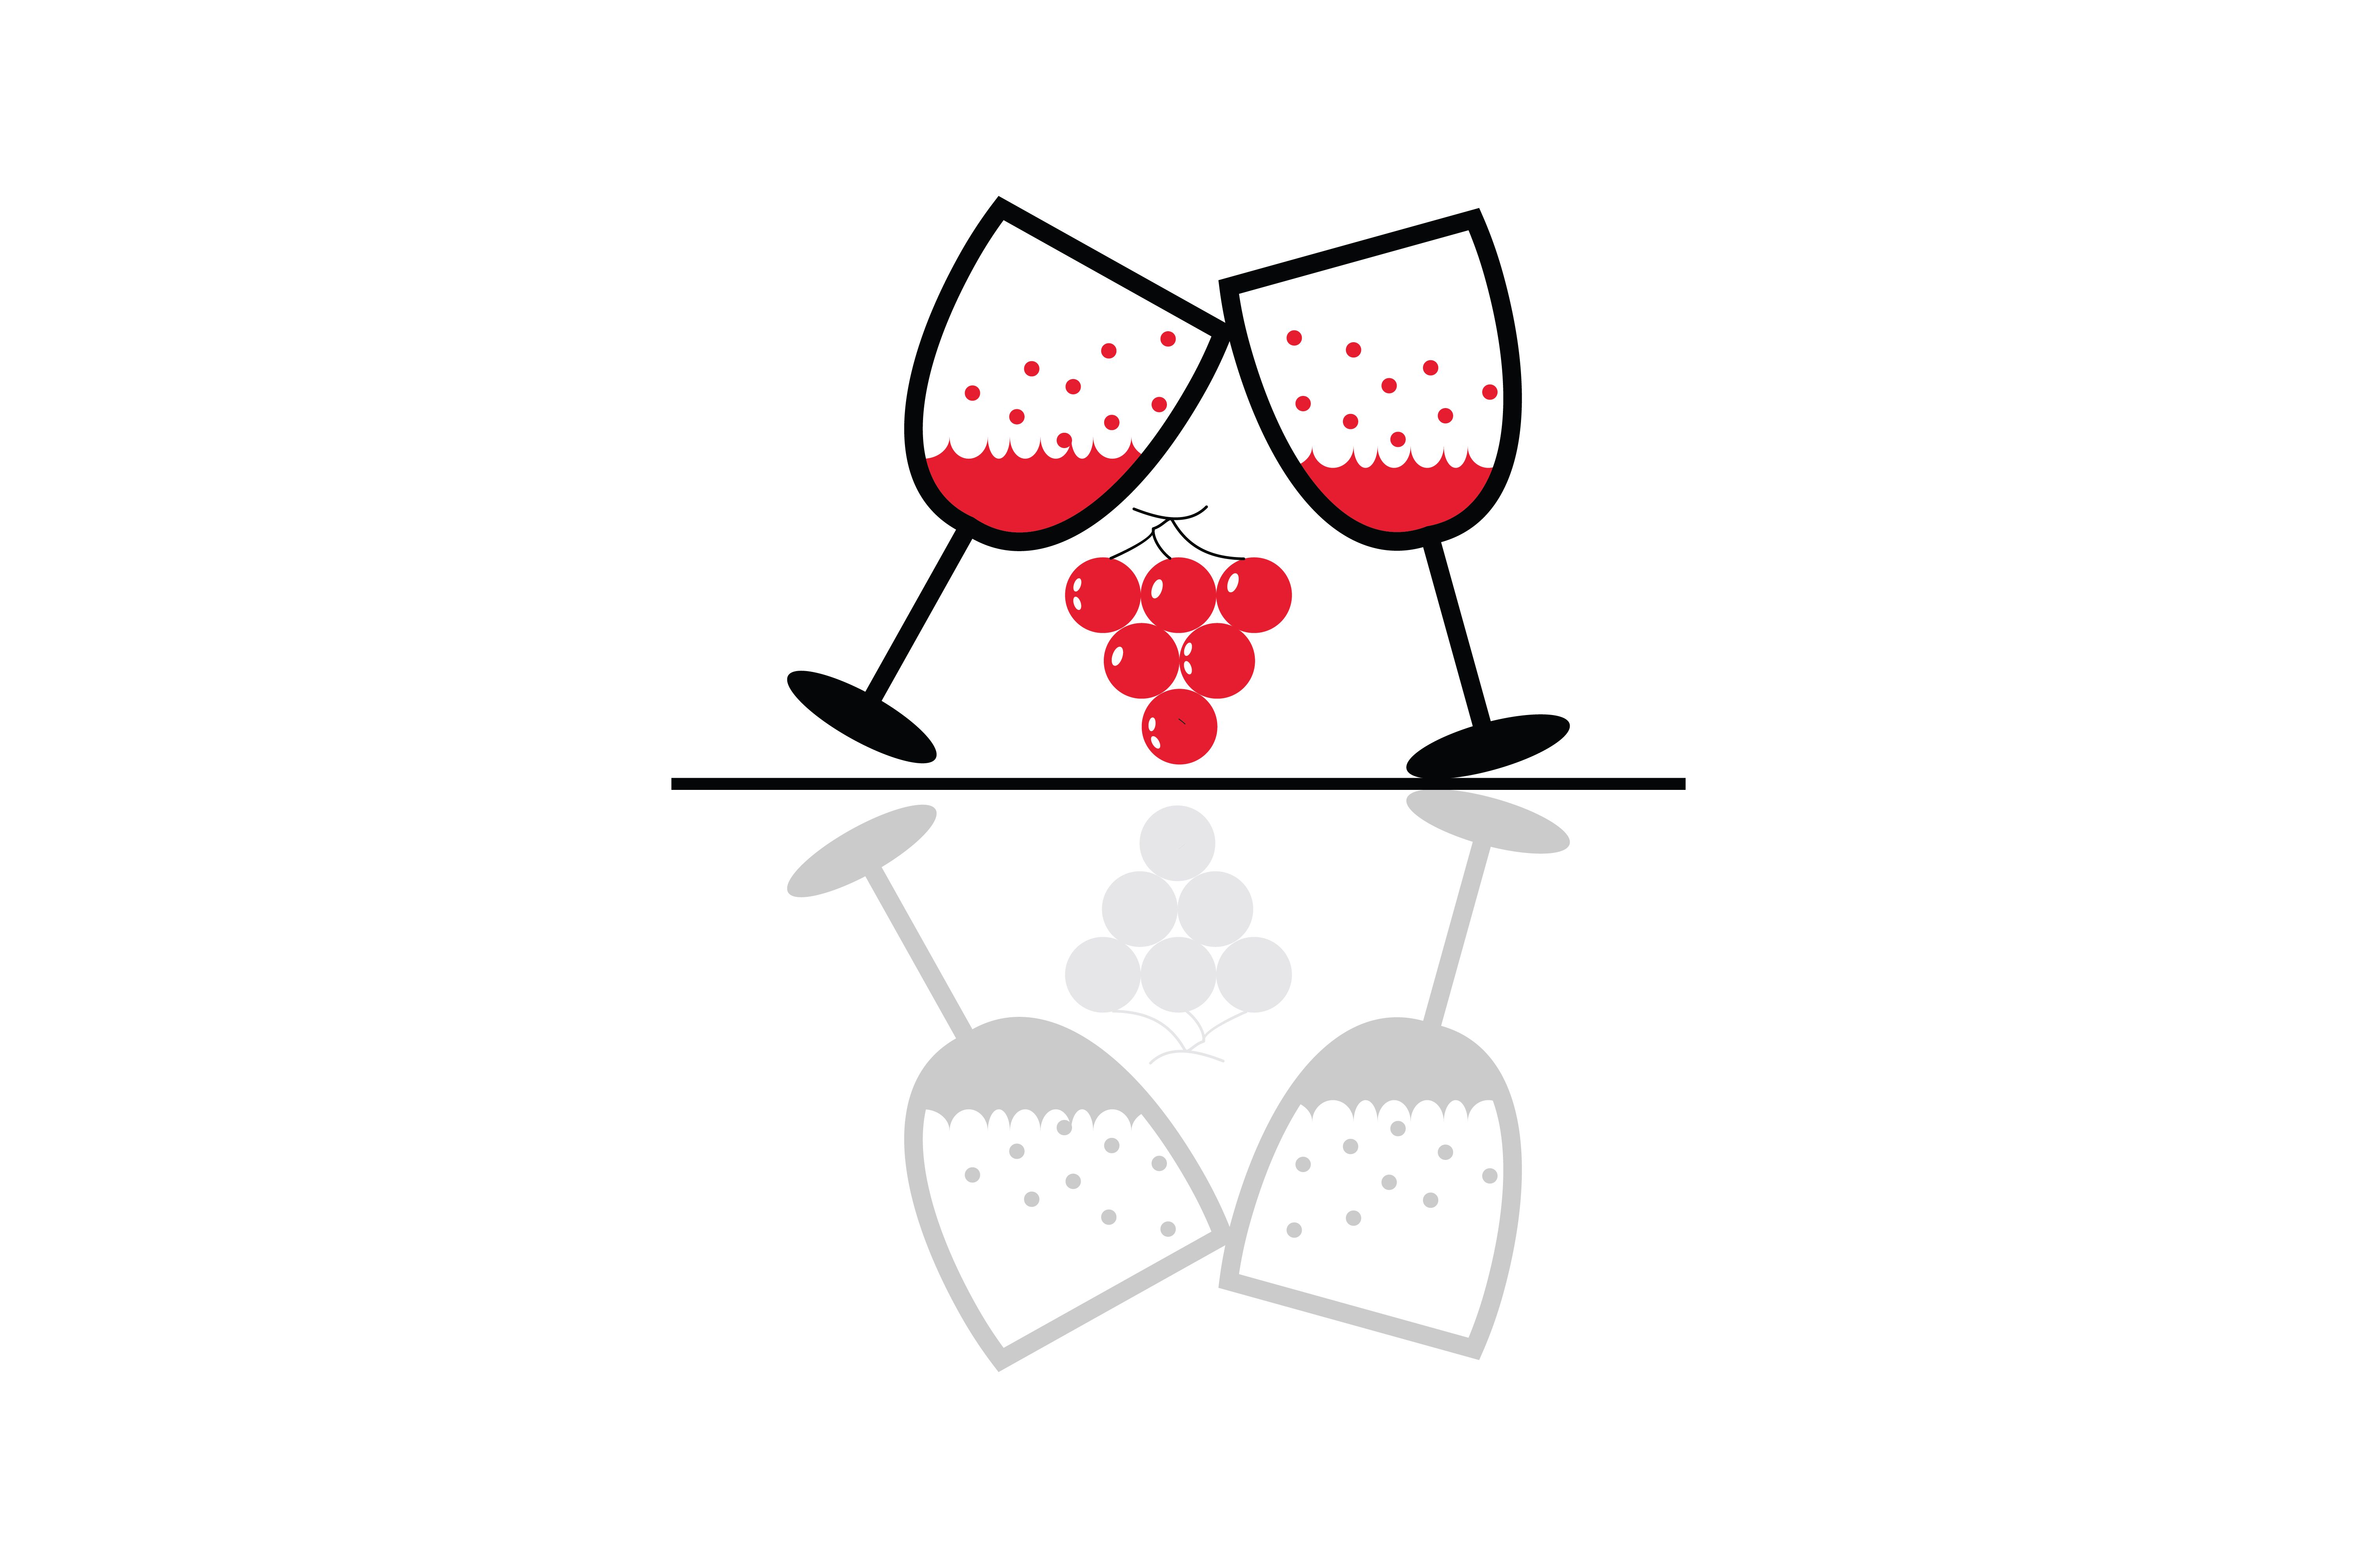 Wine Glass Drink Cheers Icon (Graphic) by Yuhana Purwanti